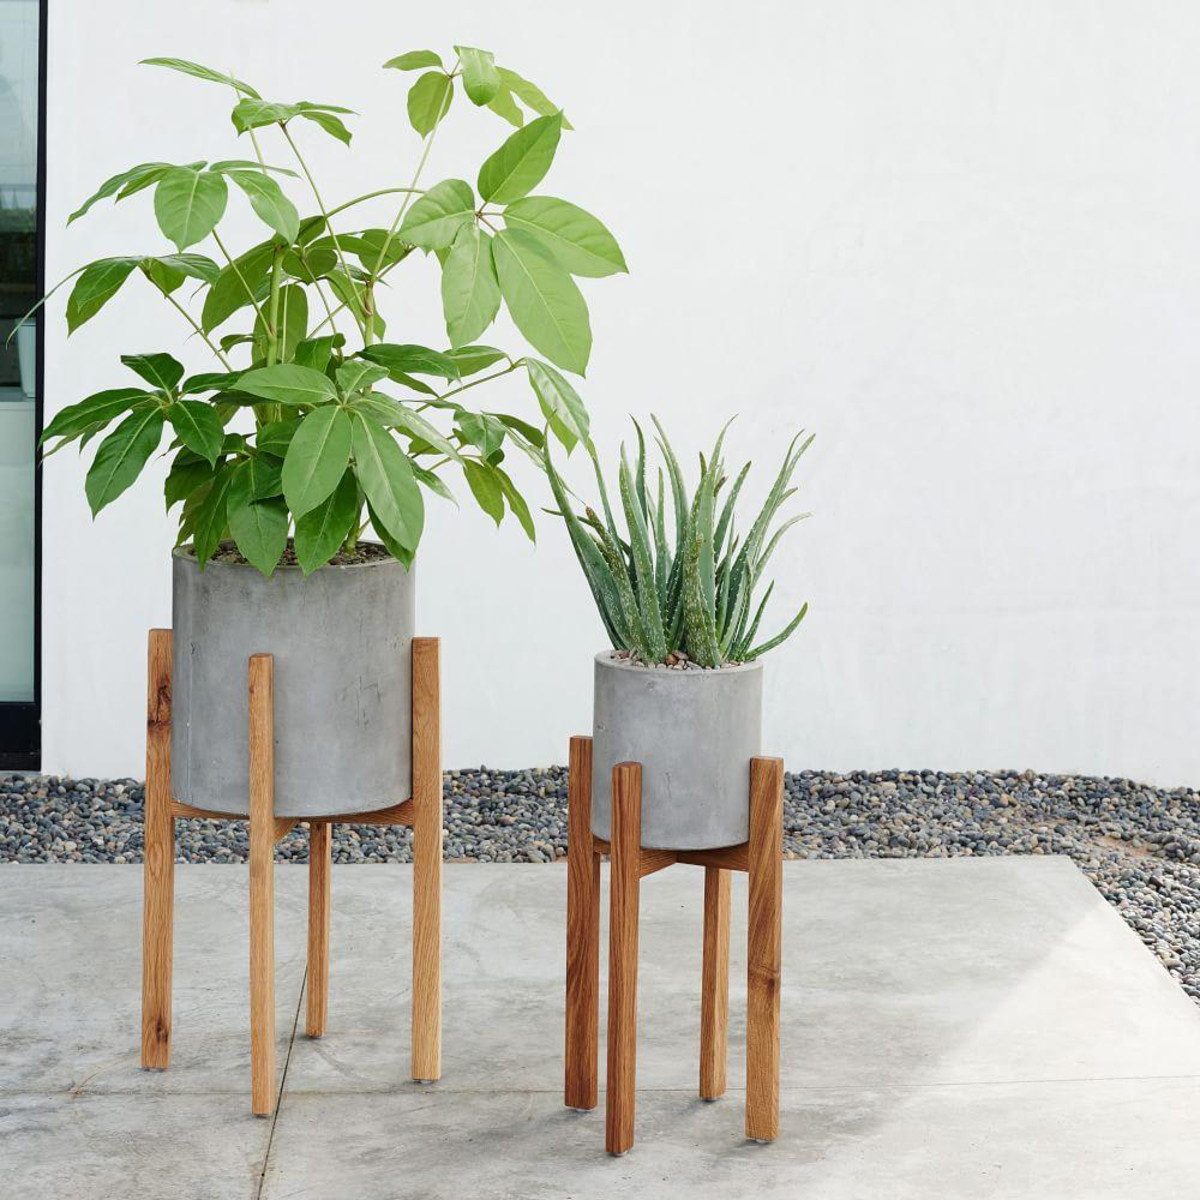 Stylish planters every home needs interiors what to for Design indoor plant pots uk